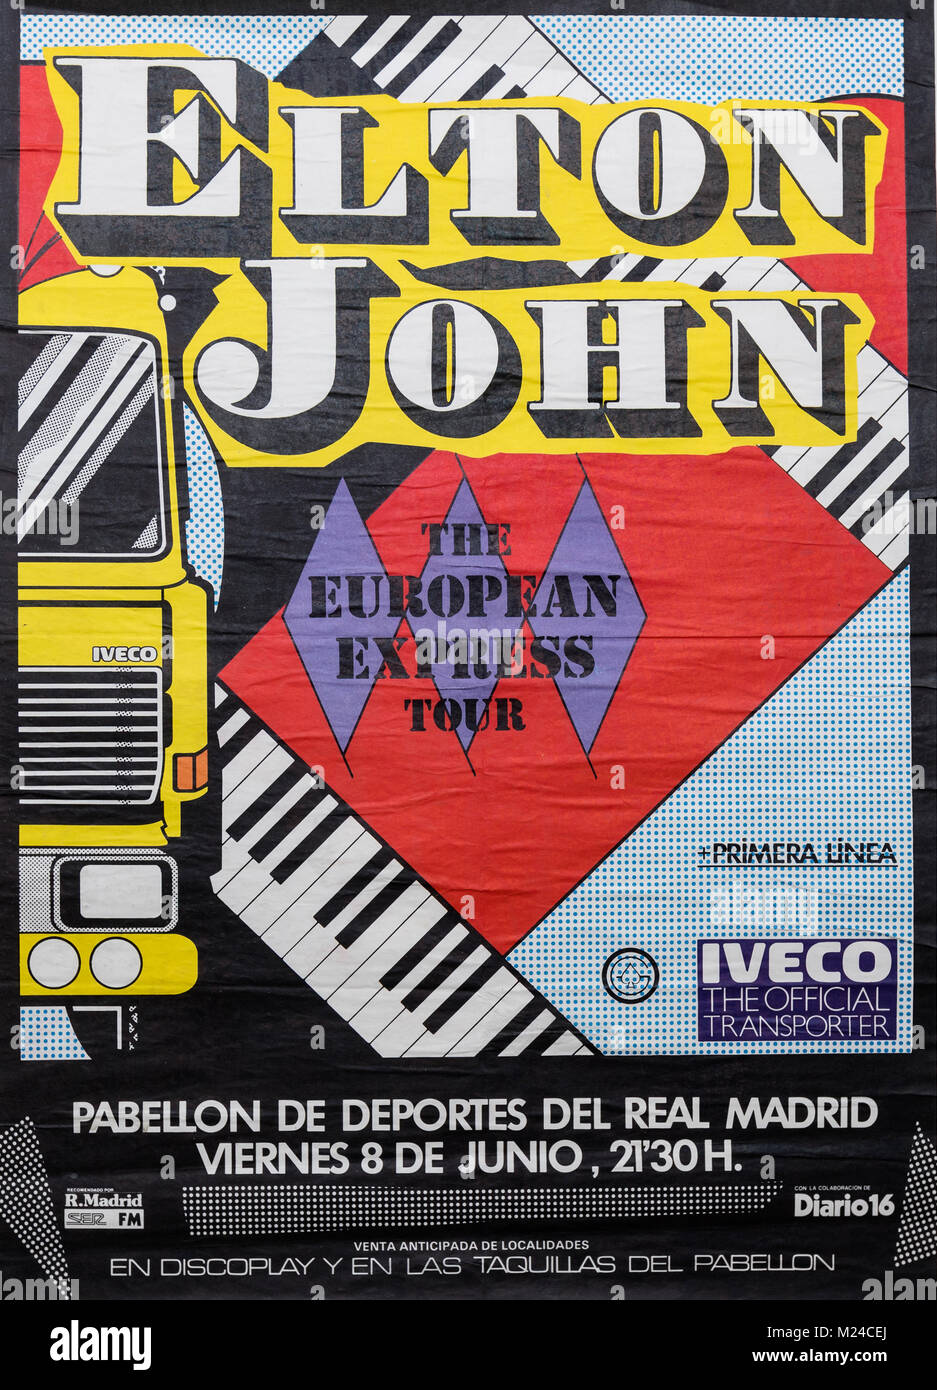 elton-john-in-concert-the-european-expre